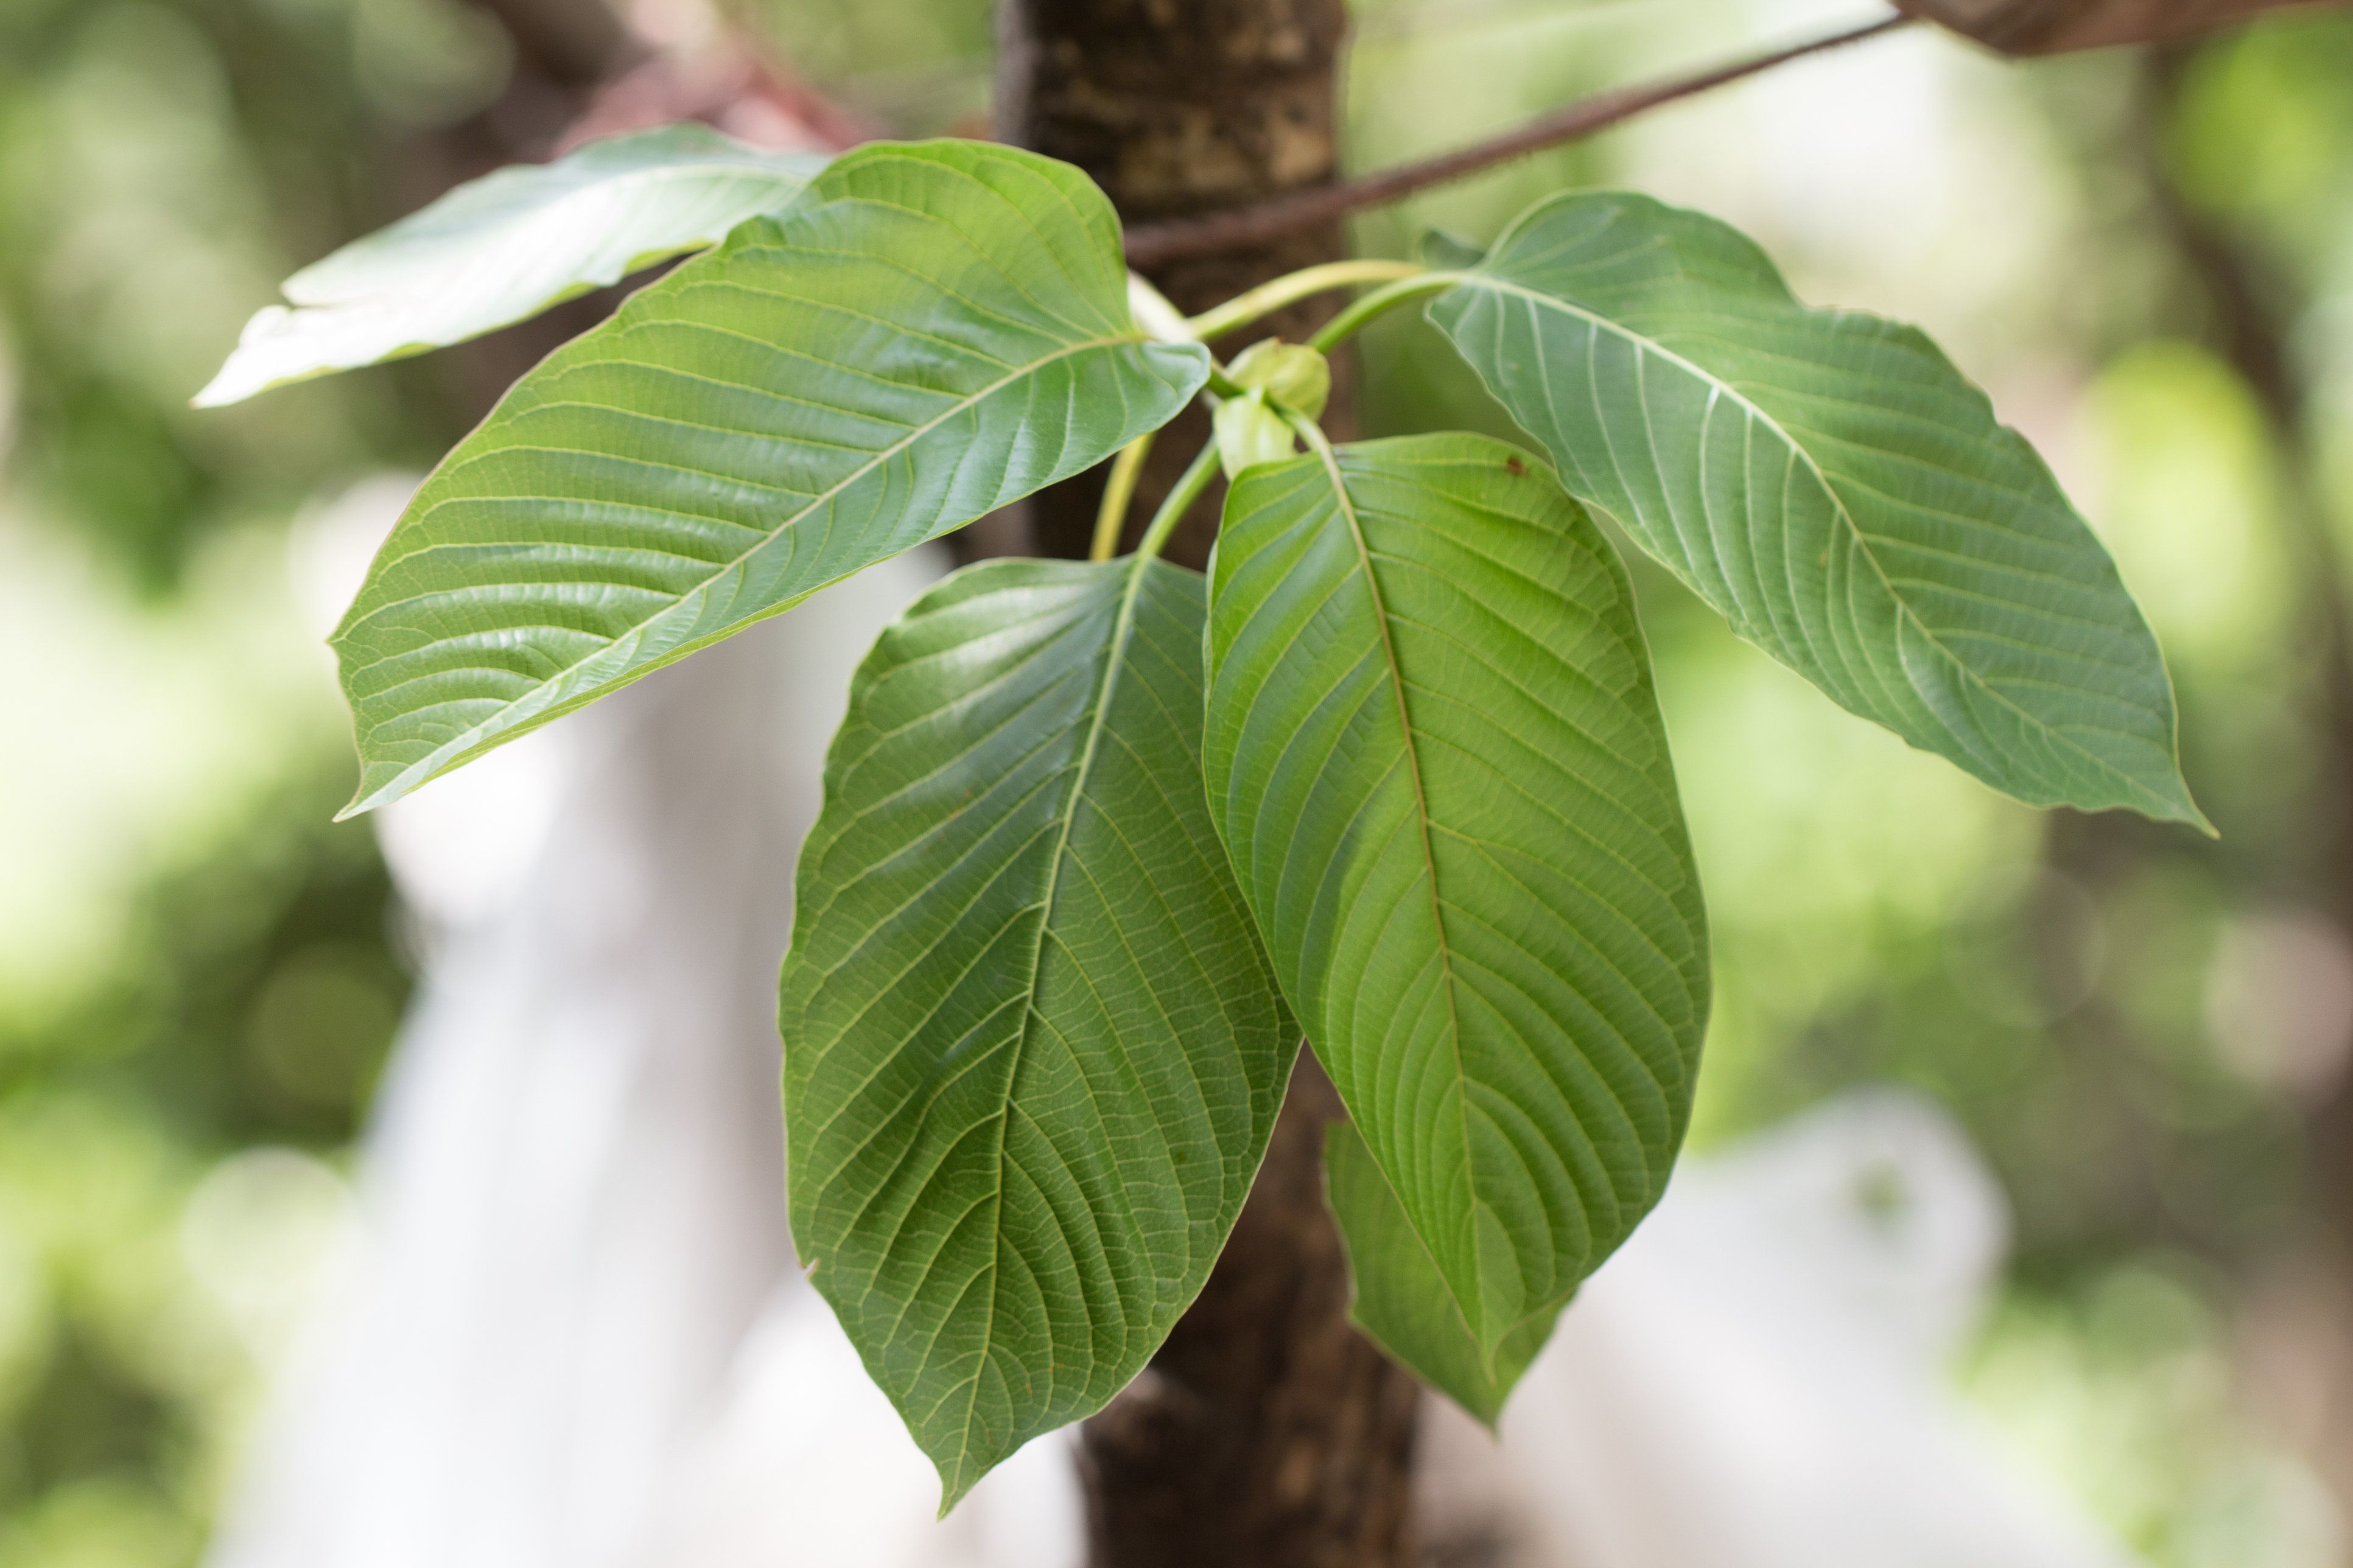 Leaves of <i>Mitragyna speciosa</i>, which are typically dried and crushed into a powder to make kratom.